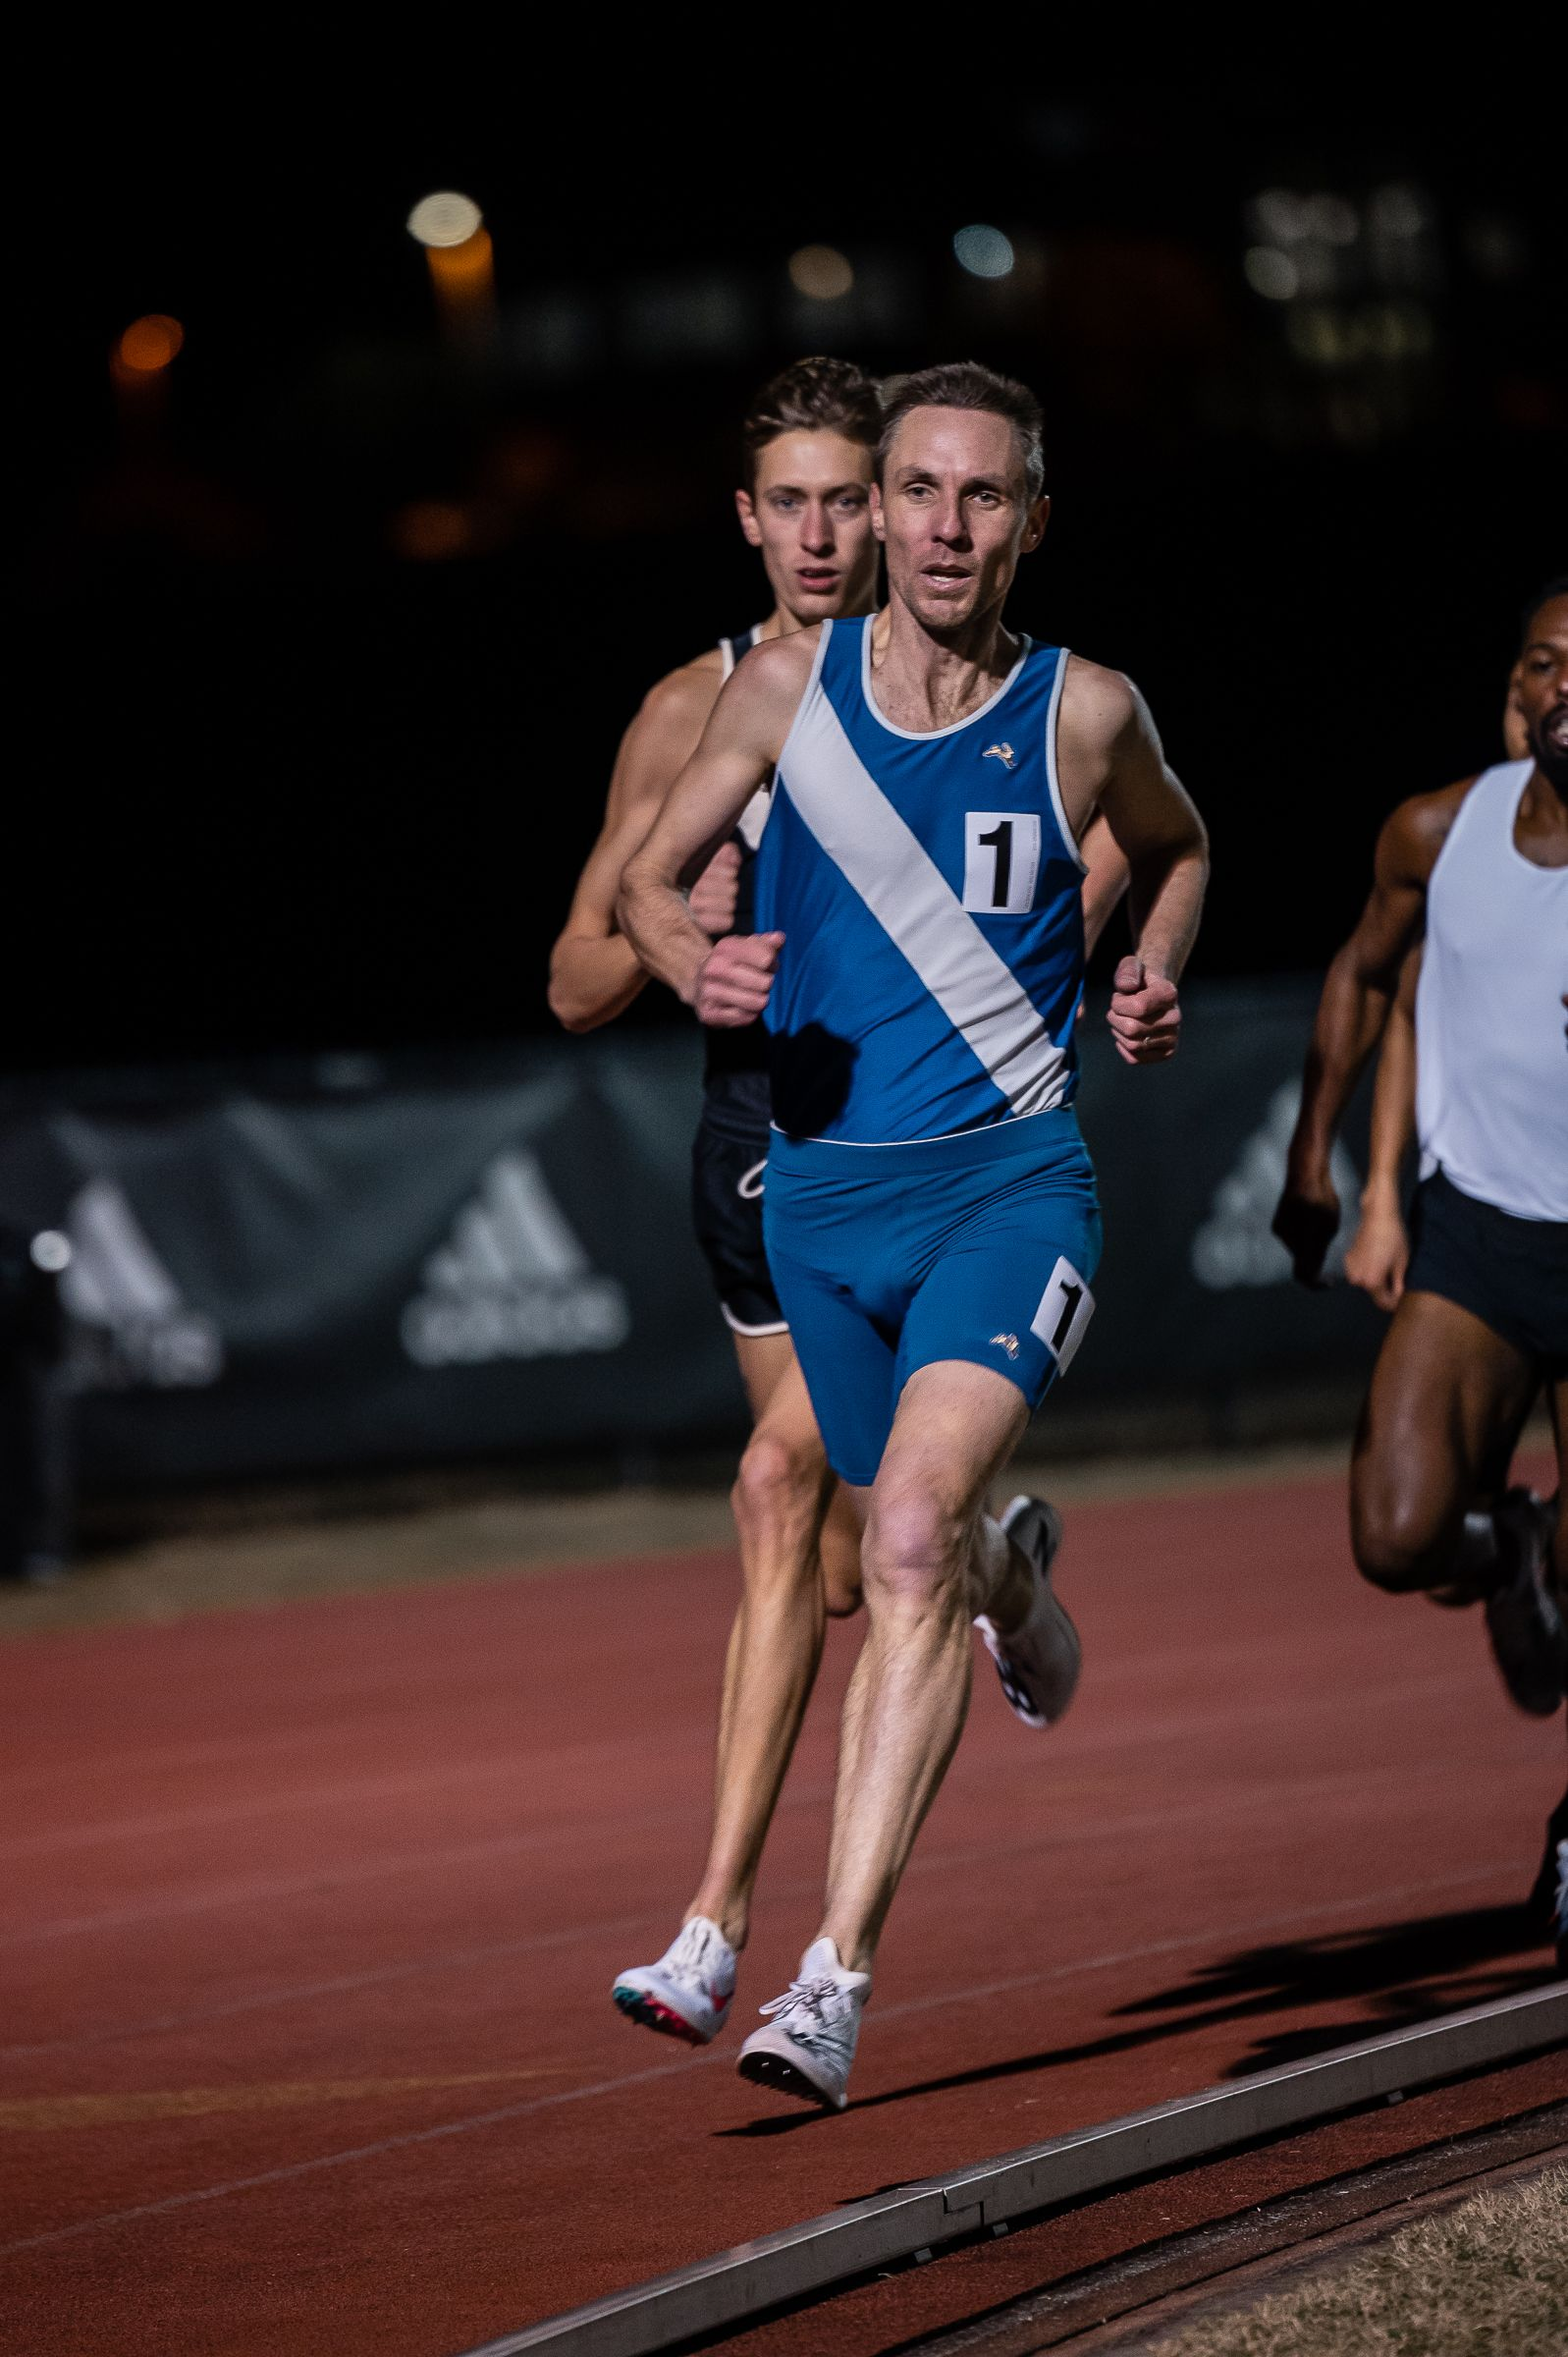 Nick Willis sets new record by running a sub-4-minute mile every year, for 19 years